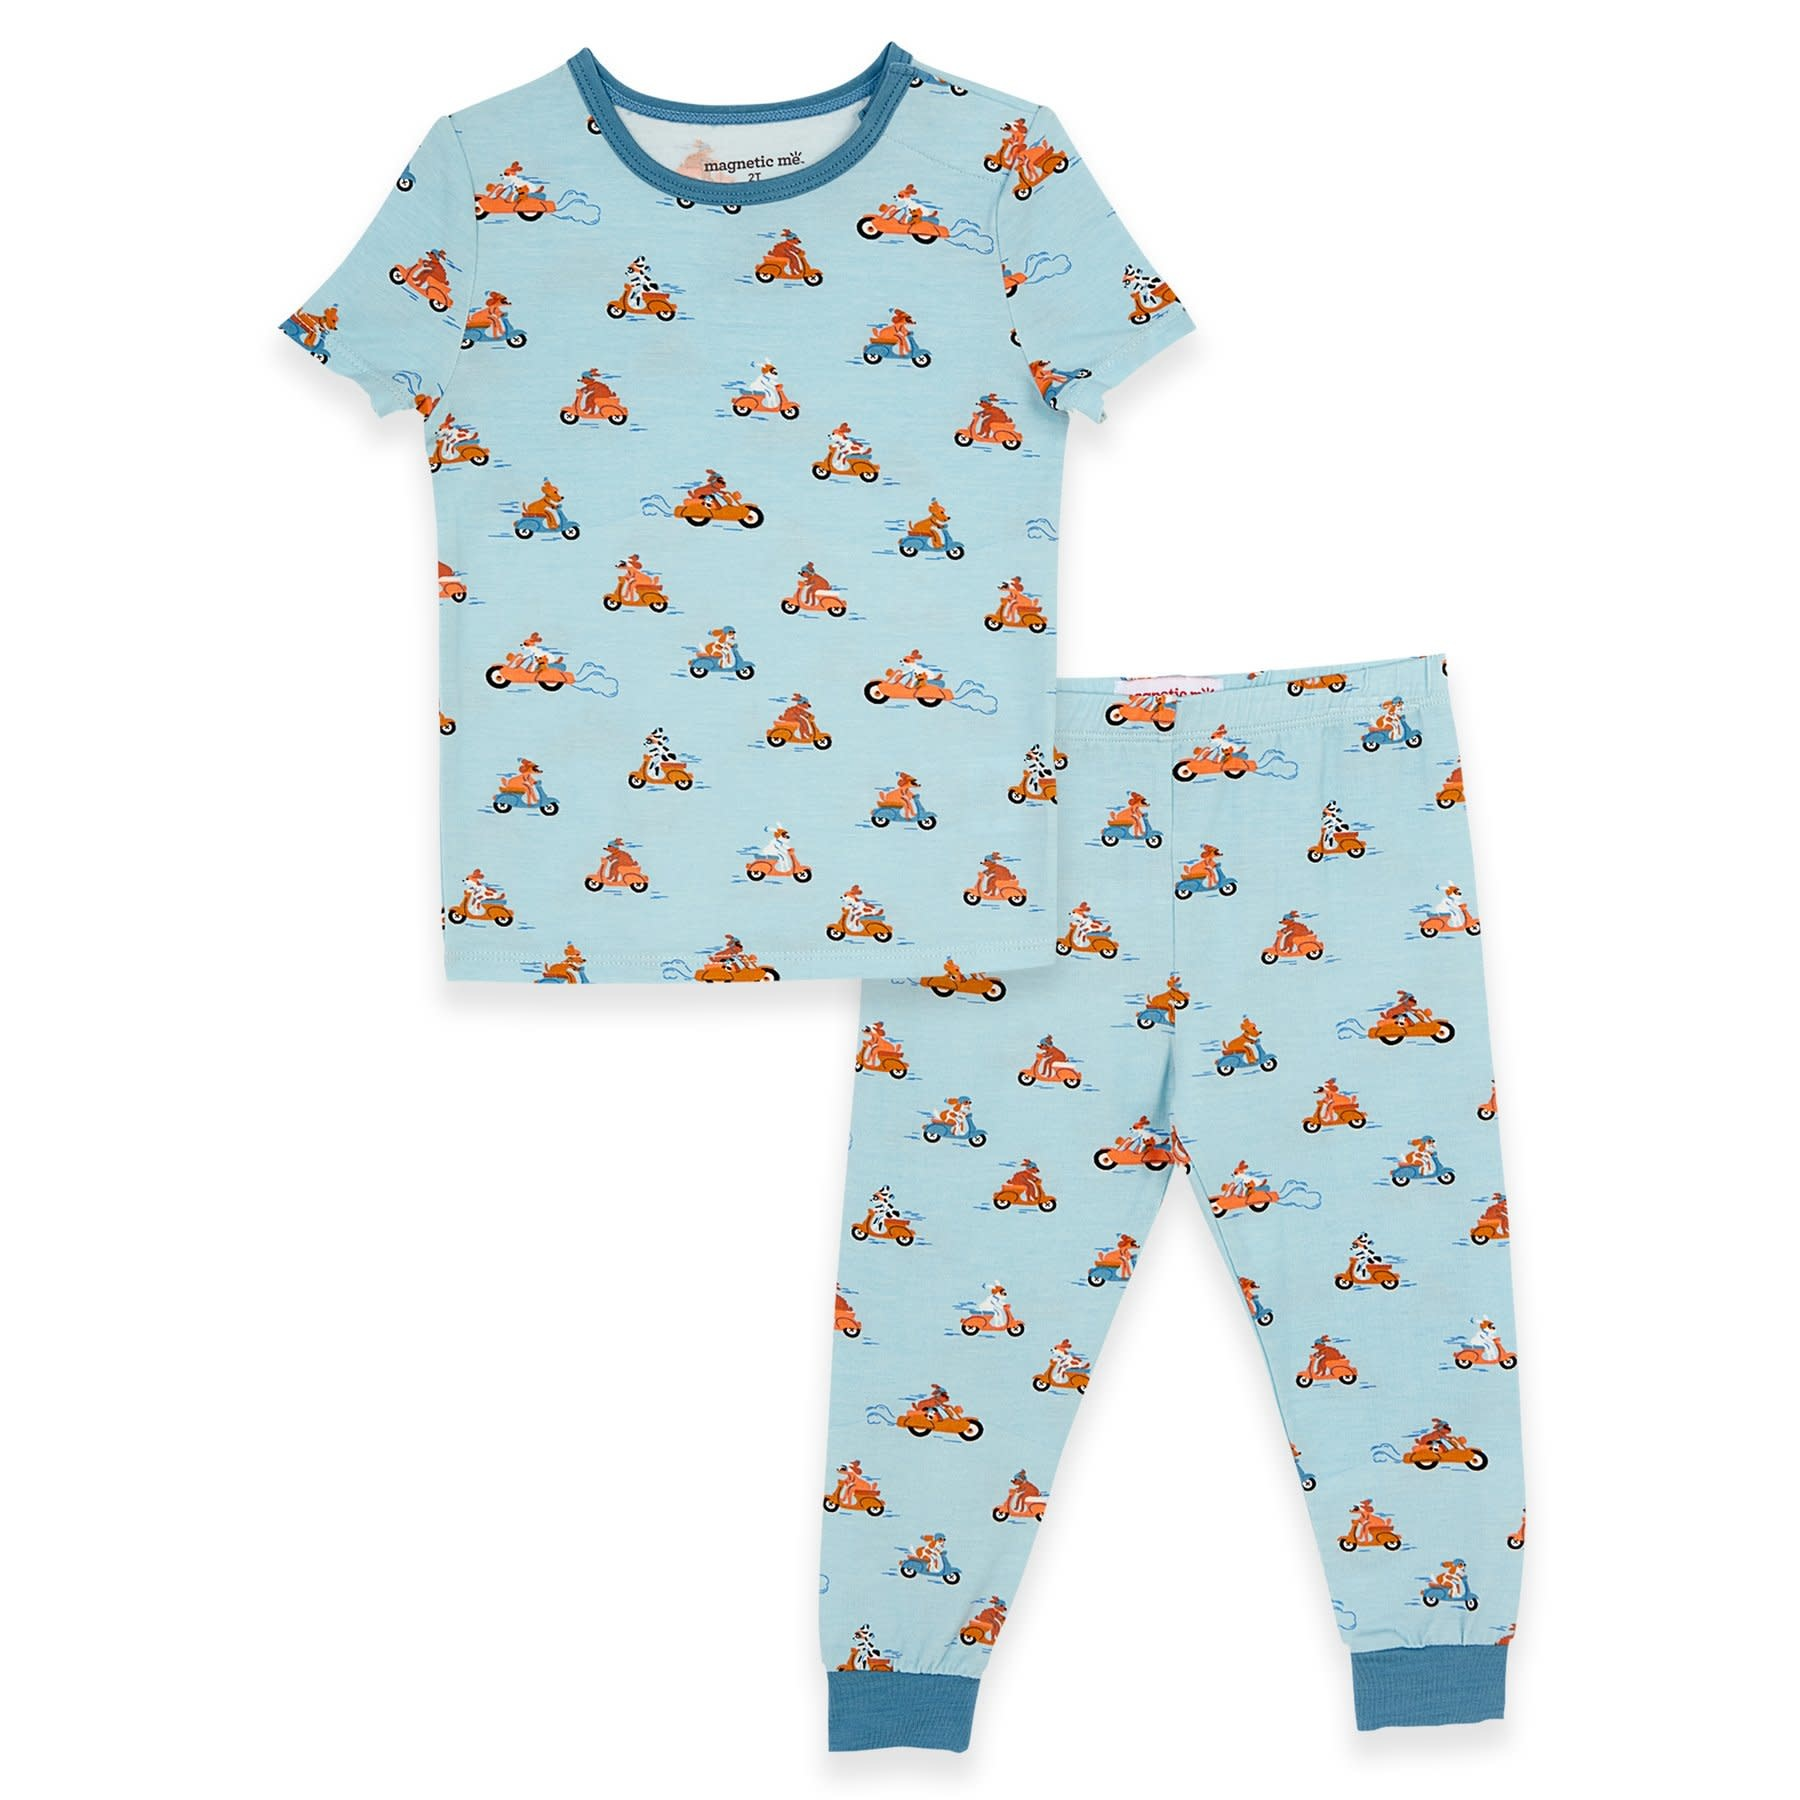 Magnificent Baby Modal Pajamas